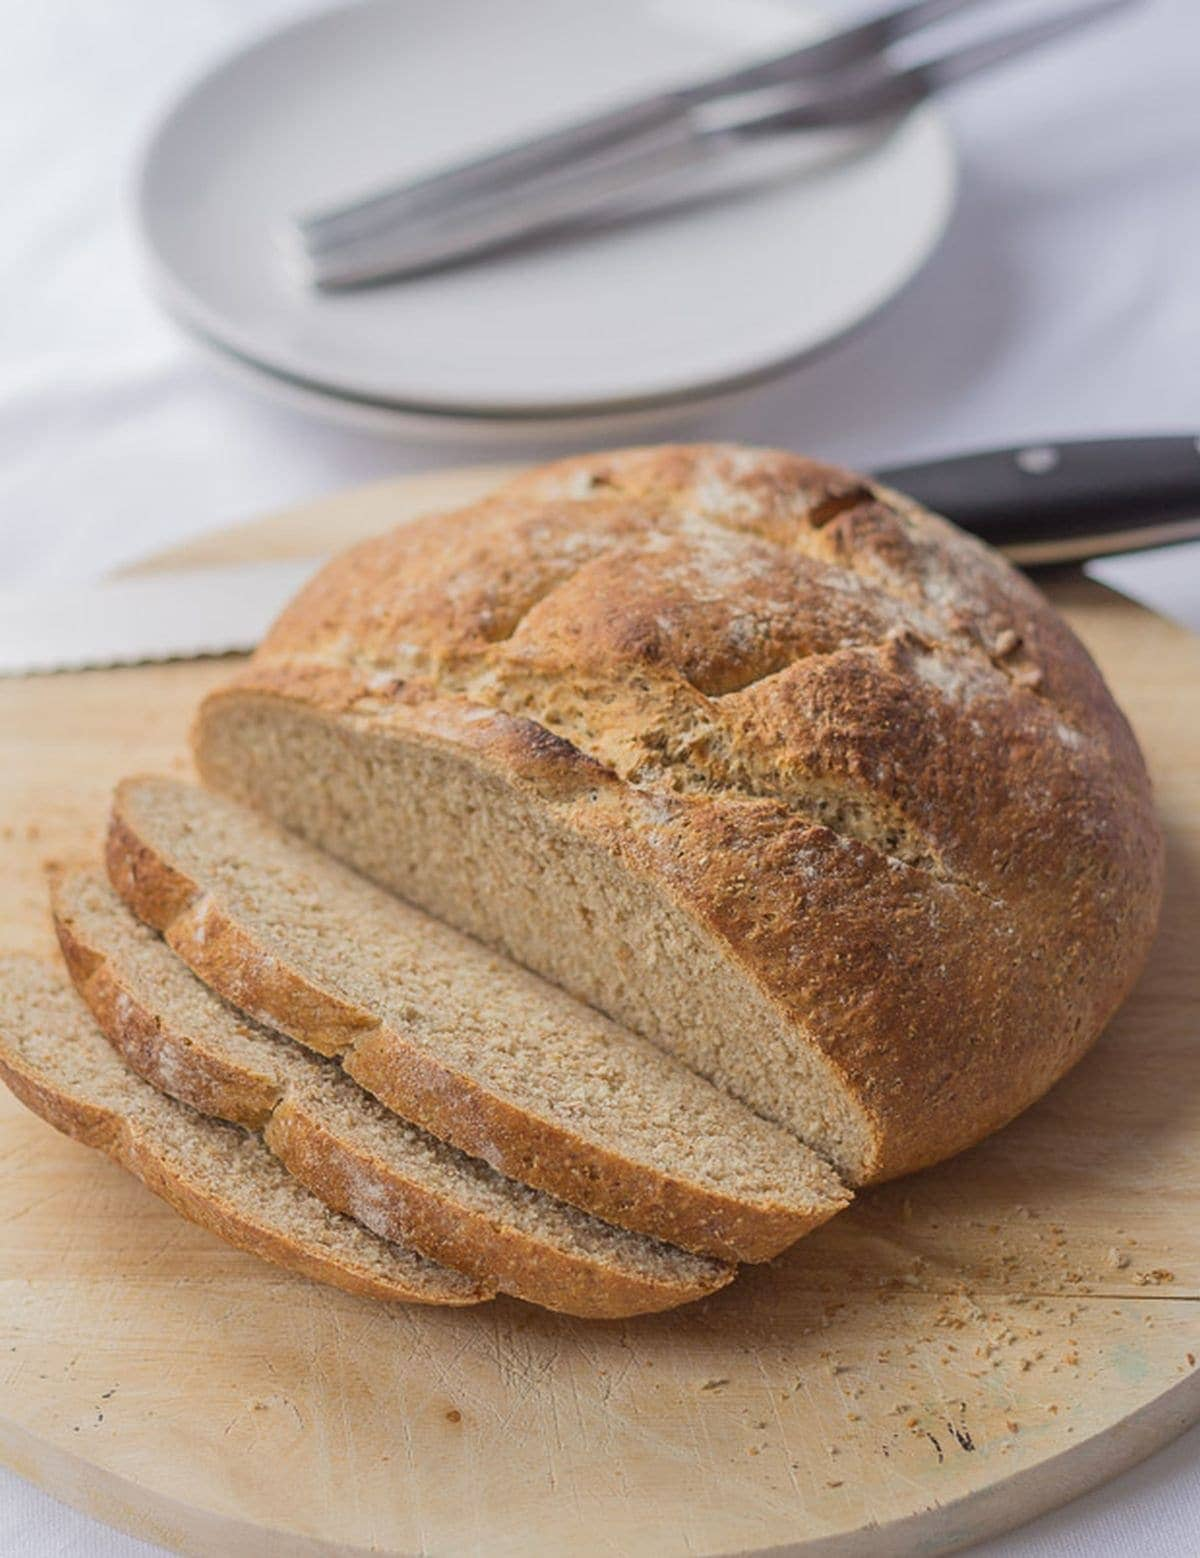 A wholmeal cob loaf on a round bread board with three slices cut off. Bread knife and side plates with knifes on in the background.